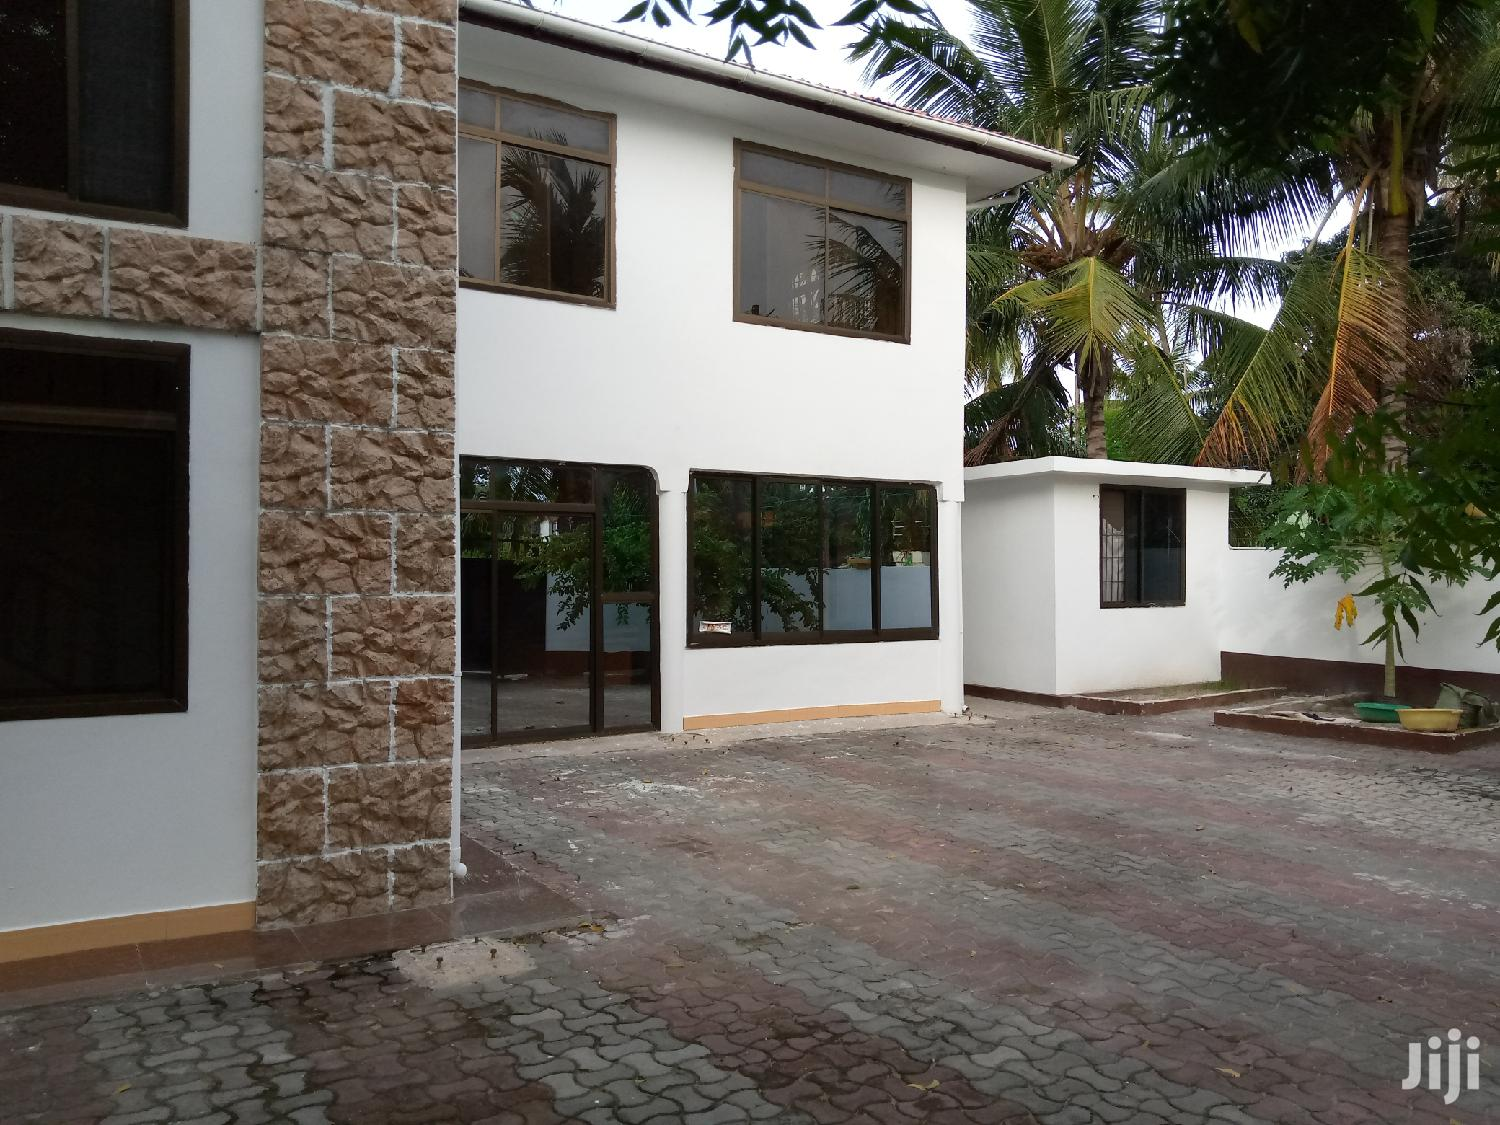 Bunglow Houses For Sale Mikochenib. | Houses & Apartments For Sale for sale in Kinondoni, Dar es Salaam, Tanzania